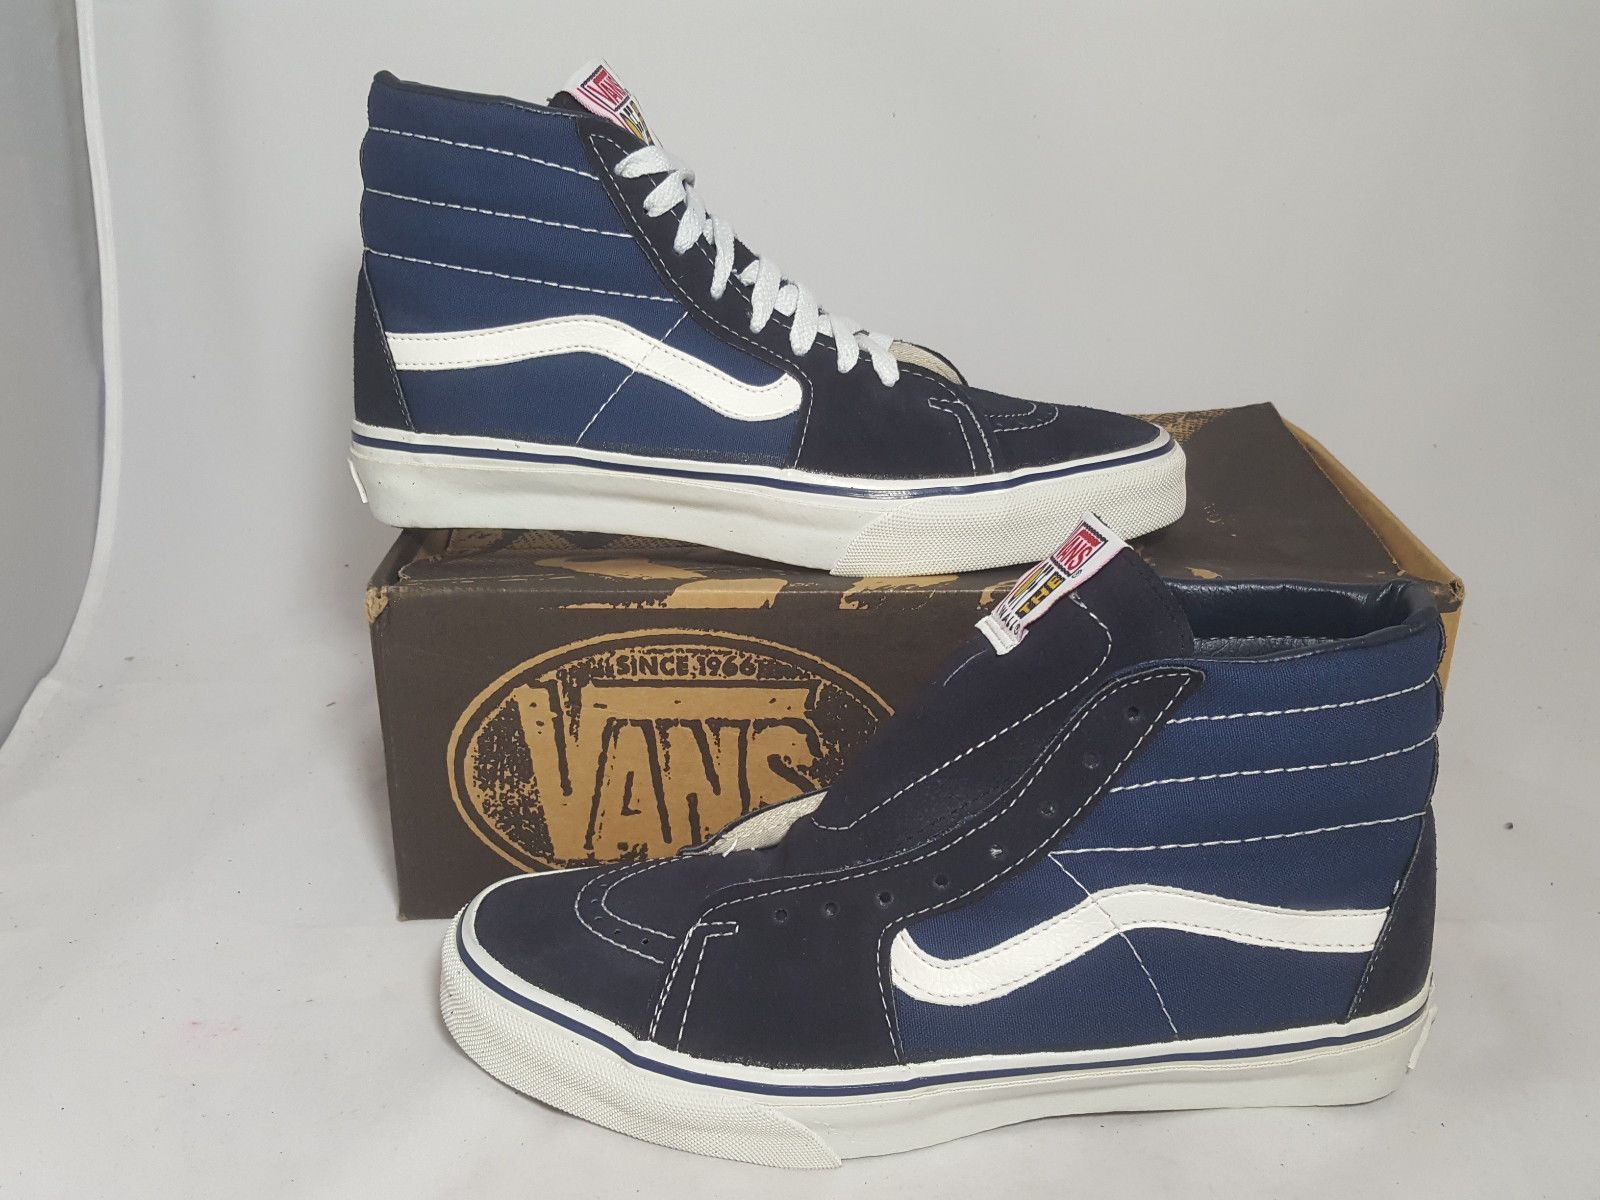 Vintage Vans shoes SK8 HI NAVY made USA Men's Size 9 NOS Old